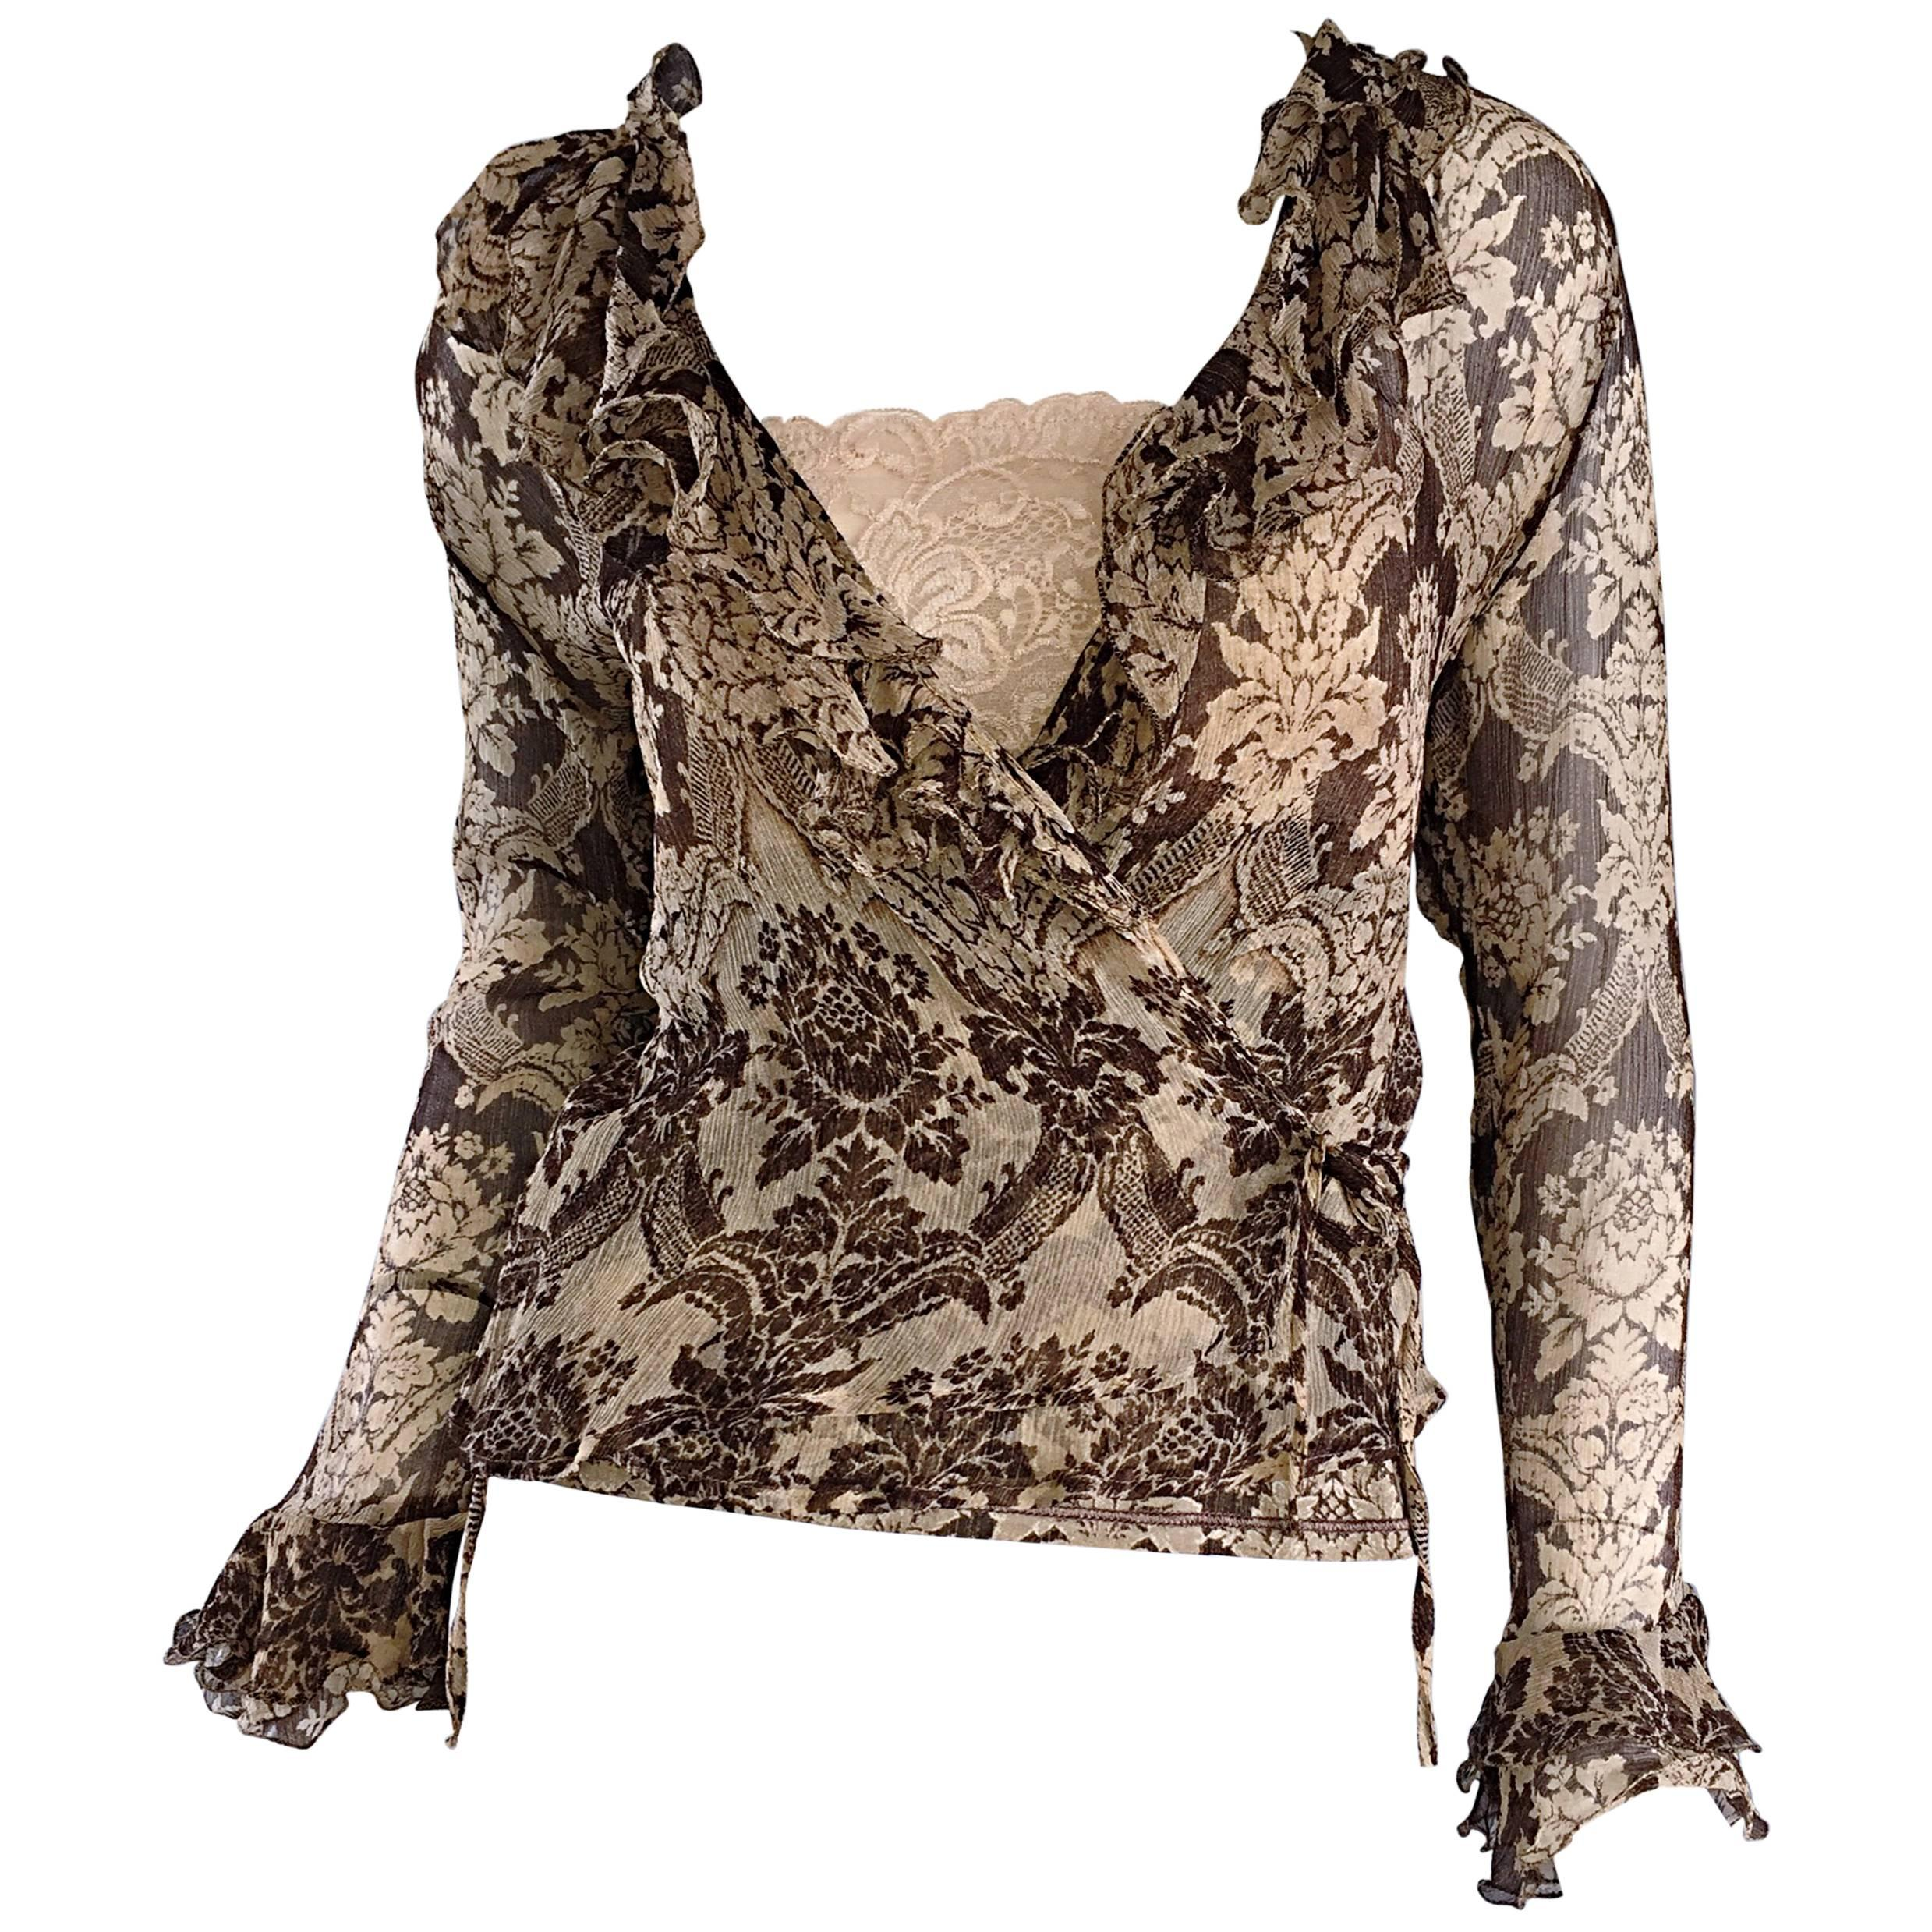 adfdd63d477b5d Amazing Vintage Roberto Cavalli Regal   Victorian Lace   Silk Blouse and  Cardigan For Sale at 1stdibs